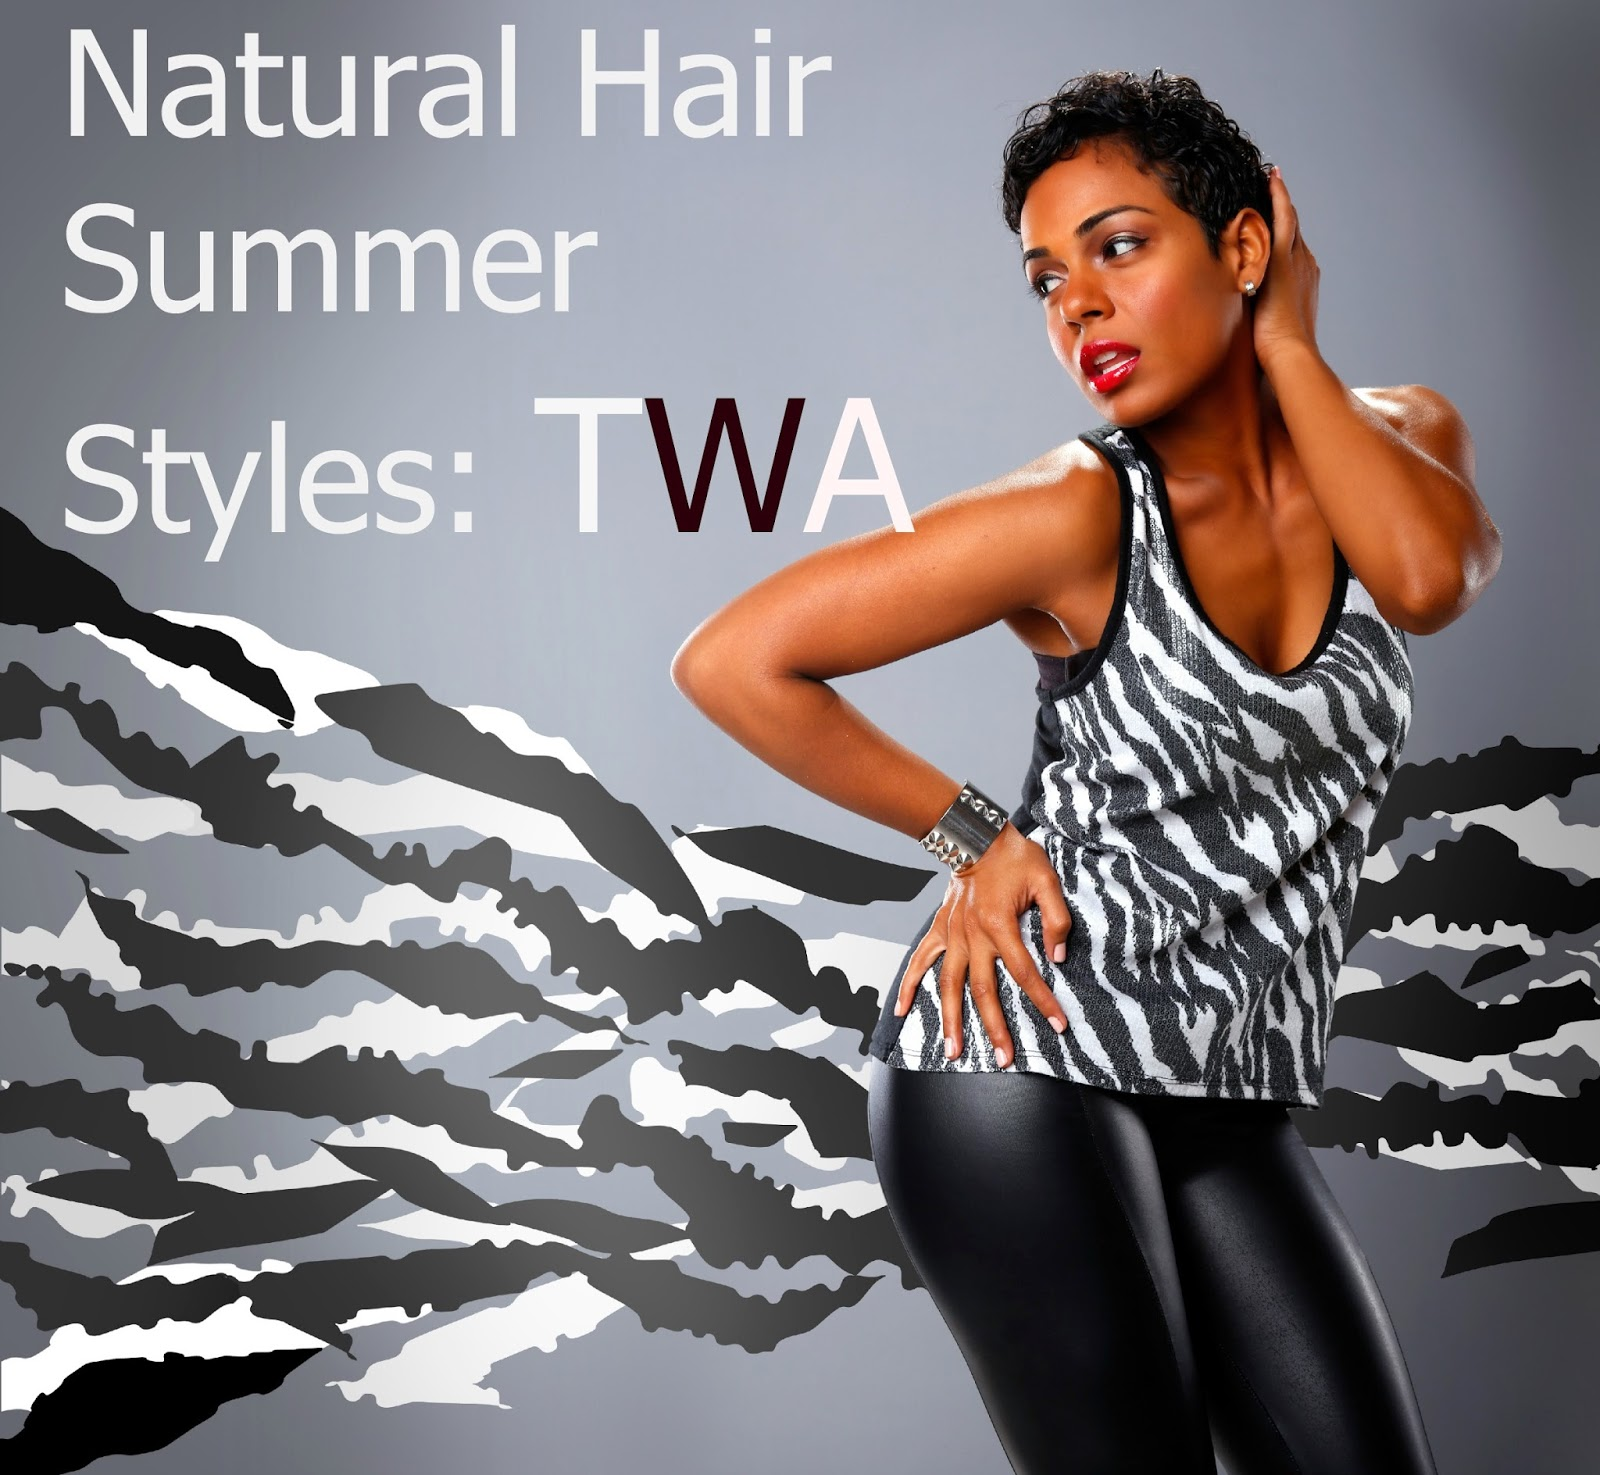 Flipboard How Much Longer Will Foreigners Buy The Growing: Natural Hair Summer Styles: TWA